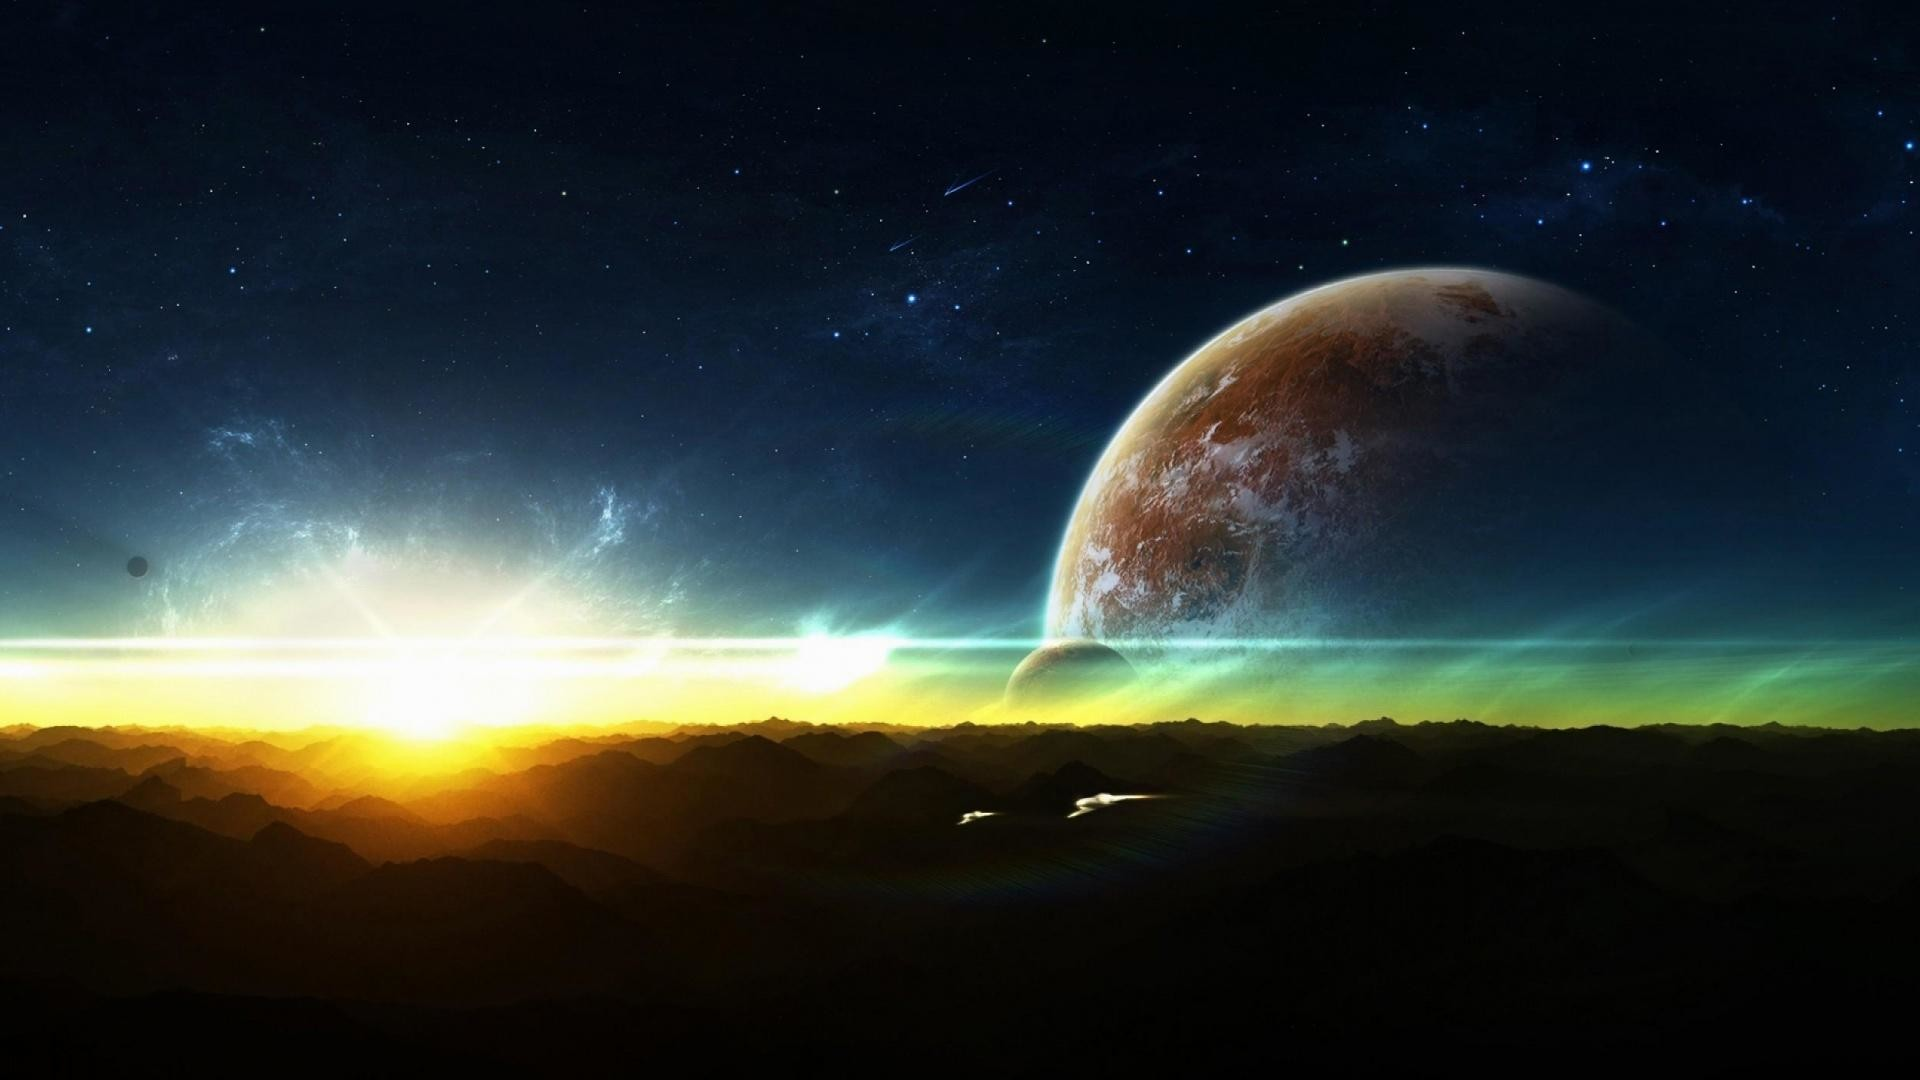 wallpaper.wiki-Space-Abstract-Sunrise-Wallpaper-1920×1080-PIC-